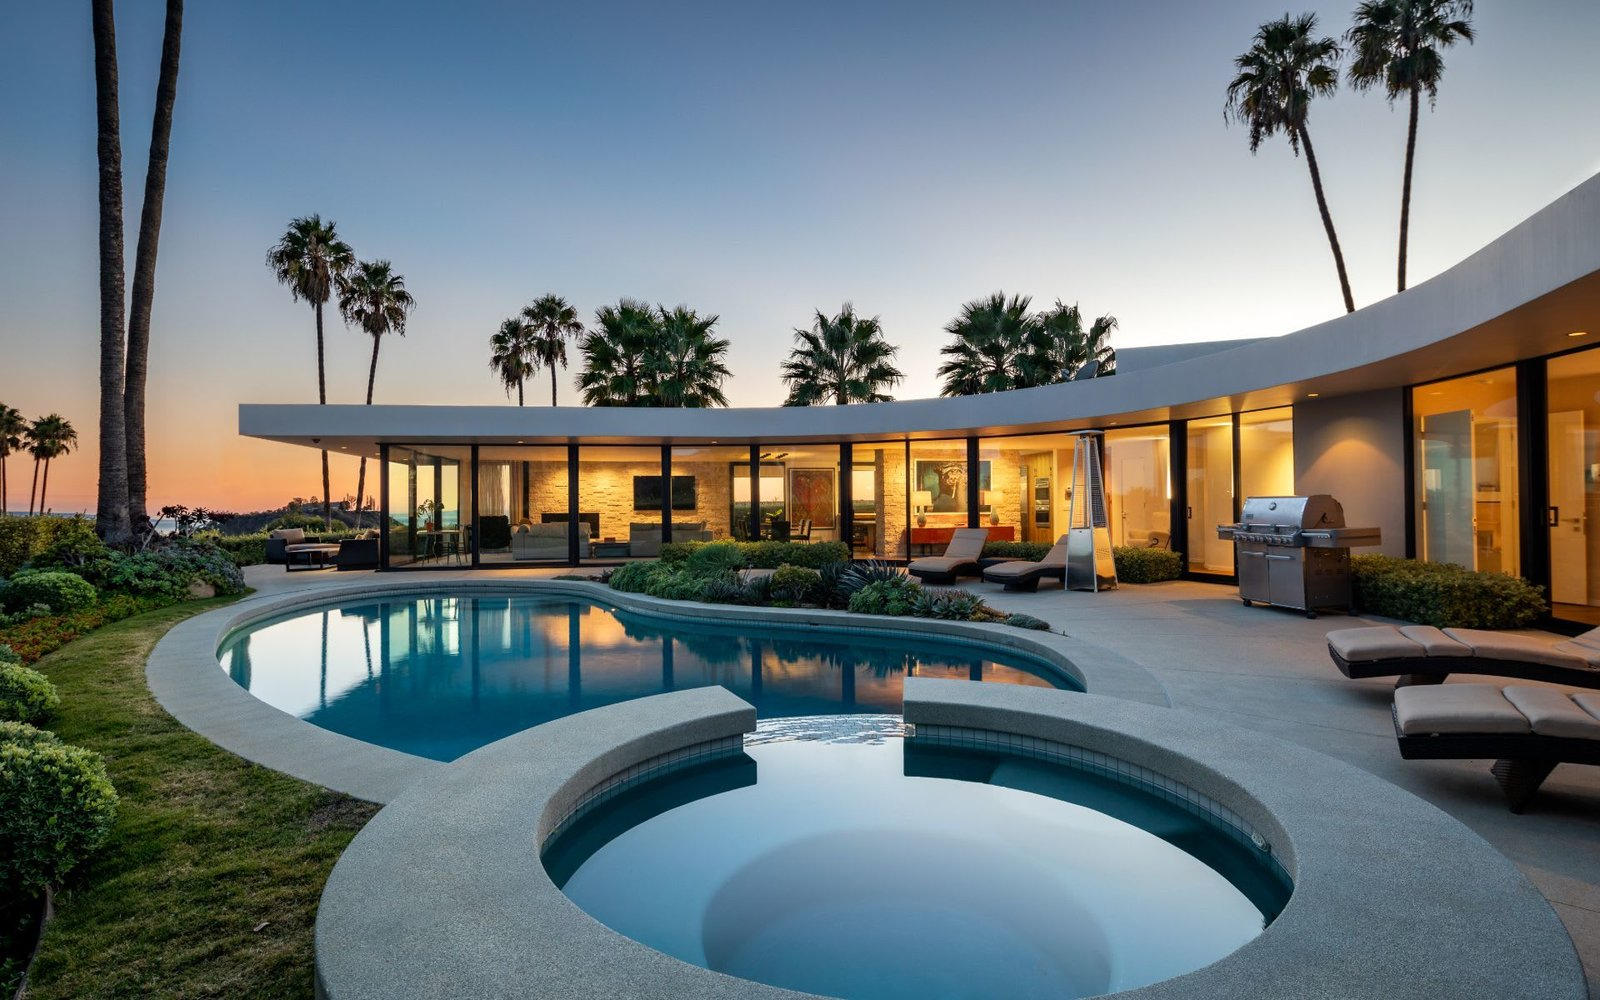 Tech CEO and billionaire Elon Musk just listed the smallest of his four L.A. homes—and it's larger than life.